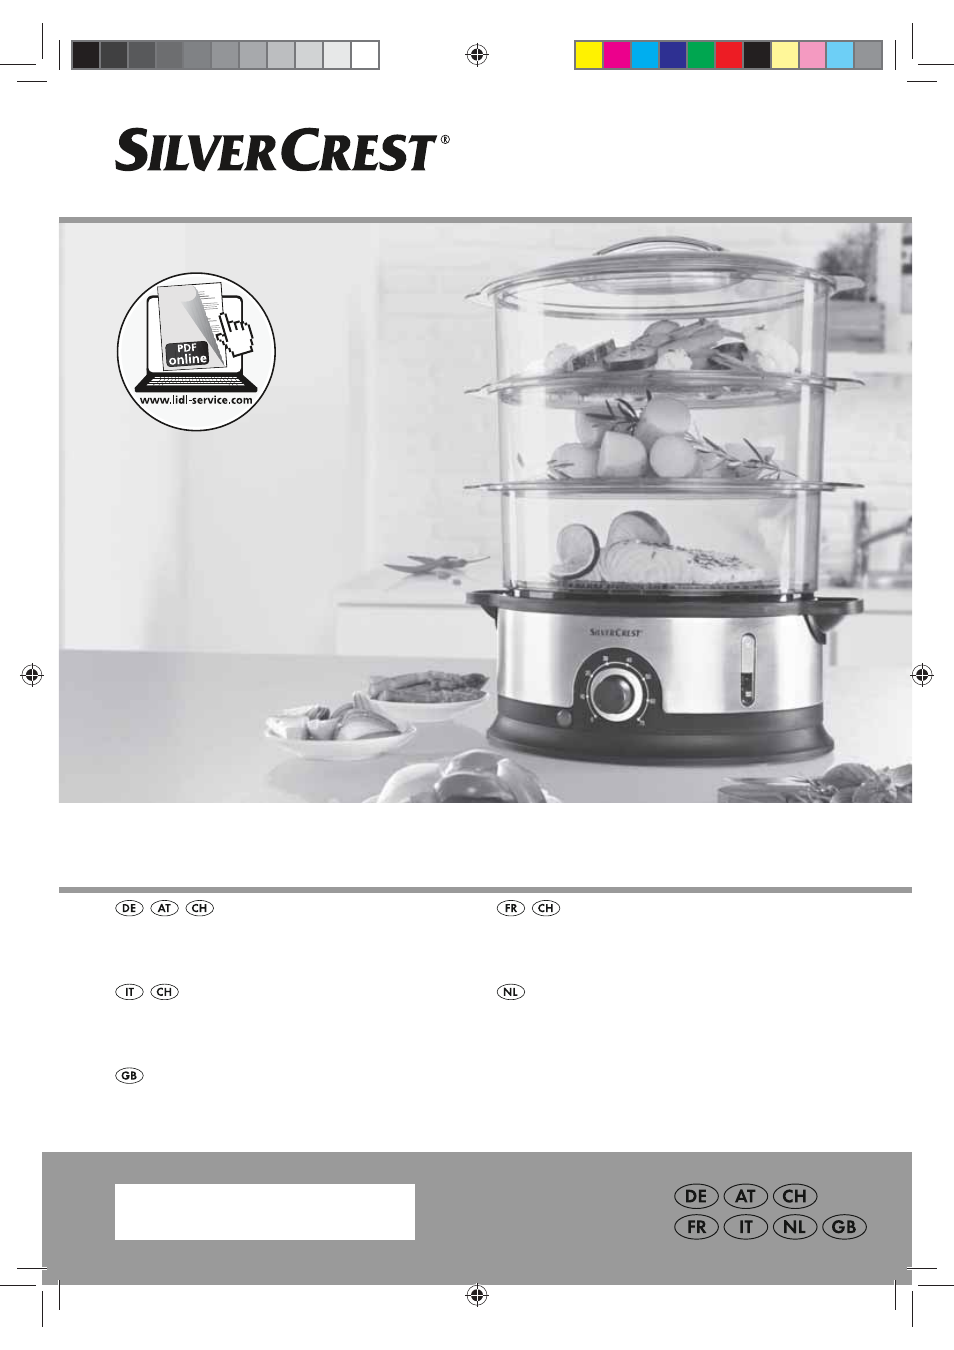 Silvercrest SDG 800 B2 User Manual | 98 pages